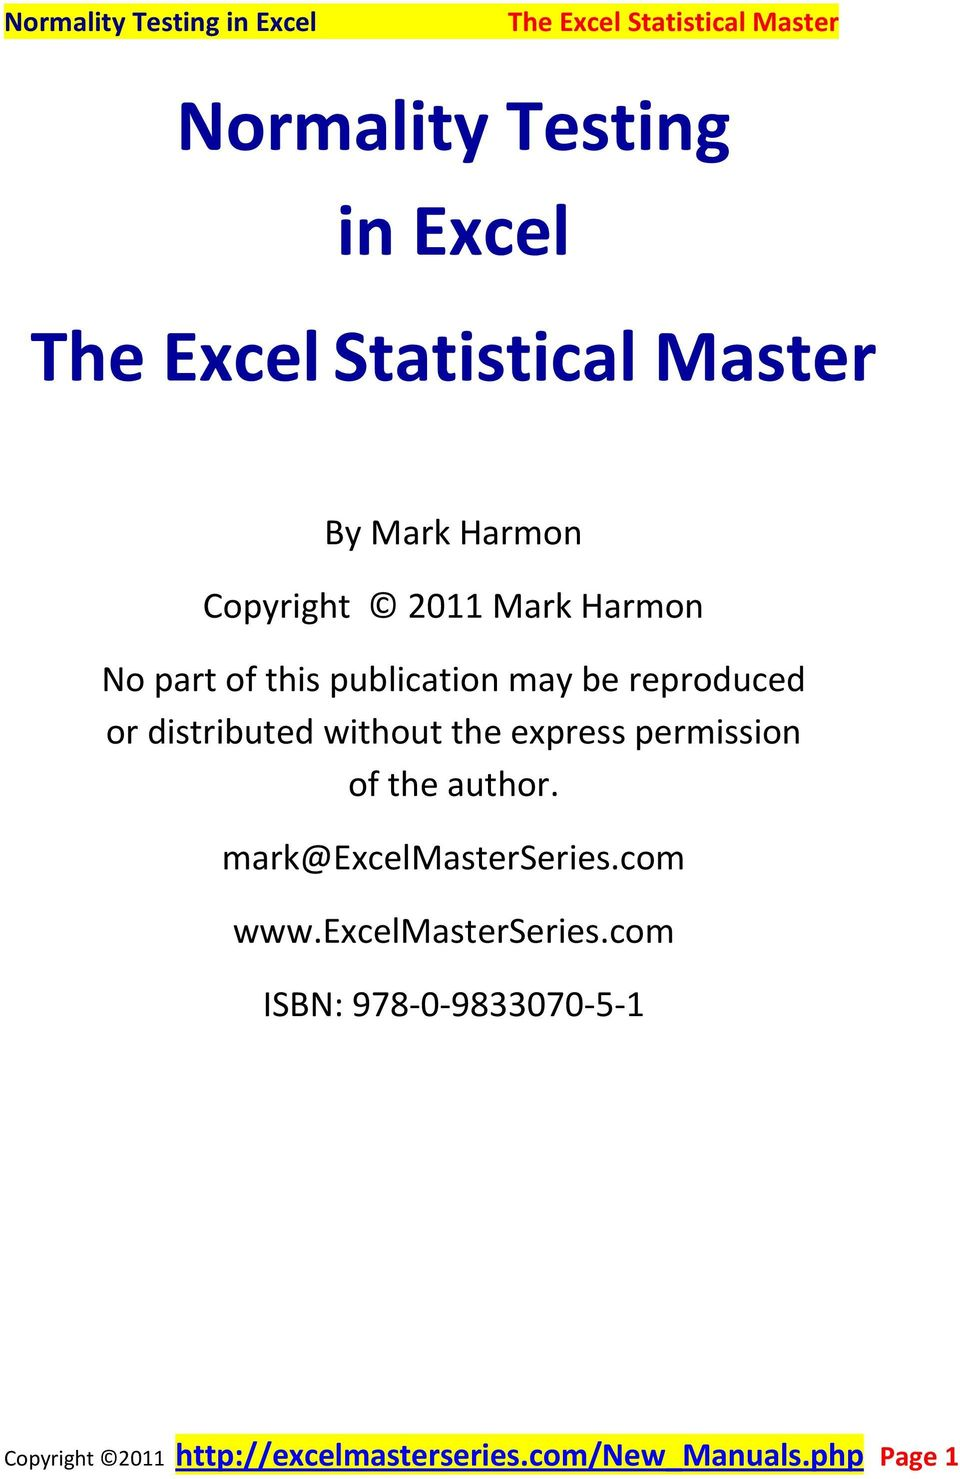 permission of the author. mark@excelmasterseries.